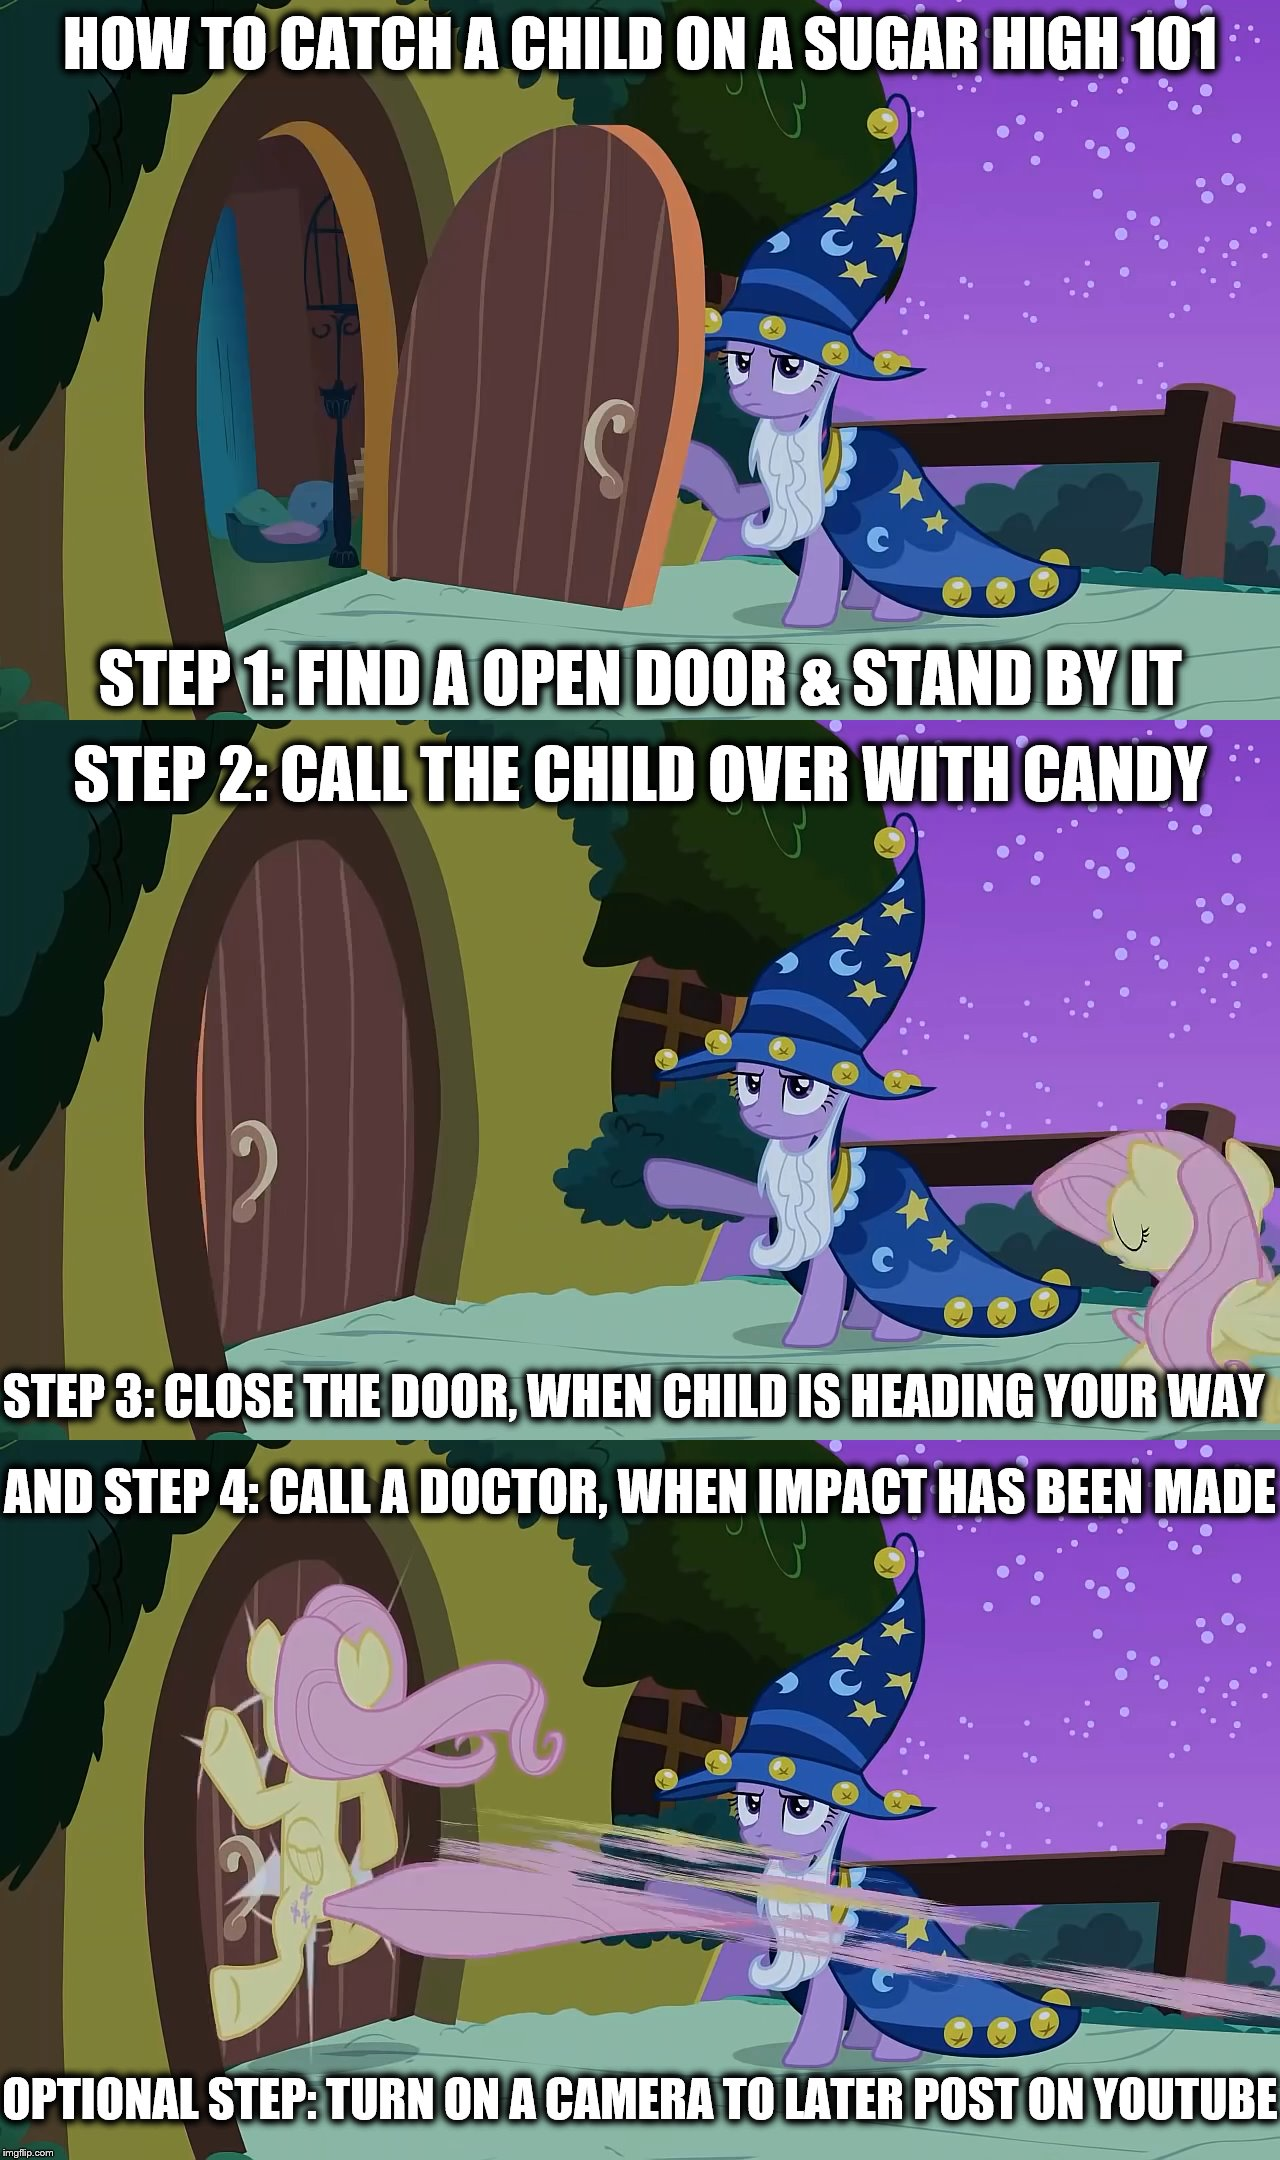 MLP Meme | HOW TO CATCH A CHILD ON A SUGAR HIGH 101 STEP 1: FIND A OPEN DOOR & STAND BY IT STEP 2: CALL THE CHILD OVER WITH CANDY STEP 3: CLOSE THE DOO | image tagged in twilight sparkle,fluttershy,my little pony friendship is magic | made w/ Imgflip meme maker